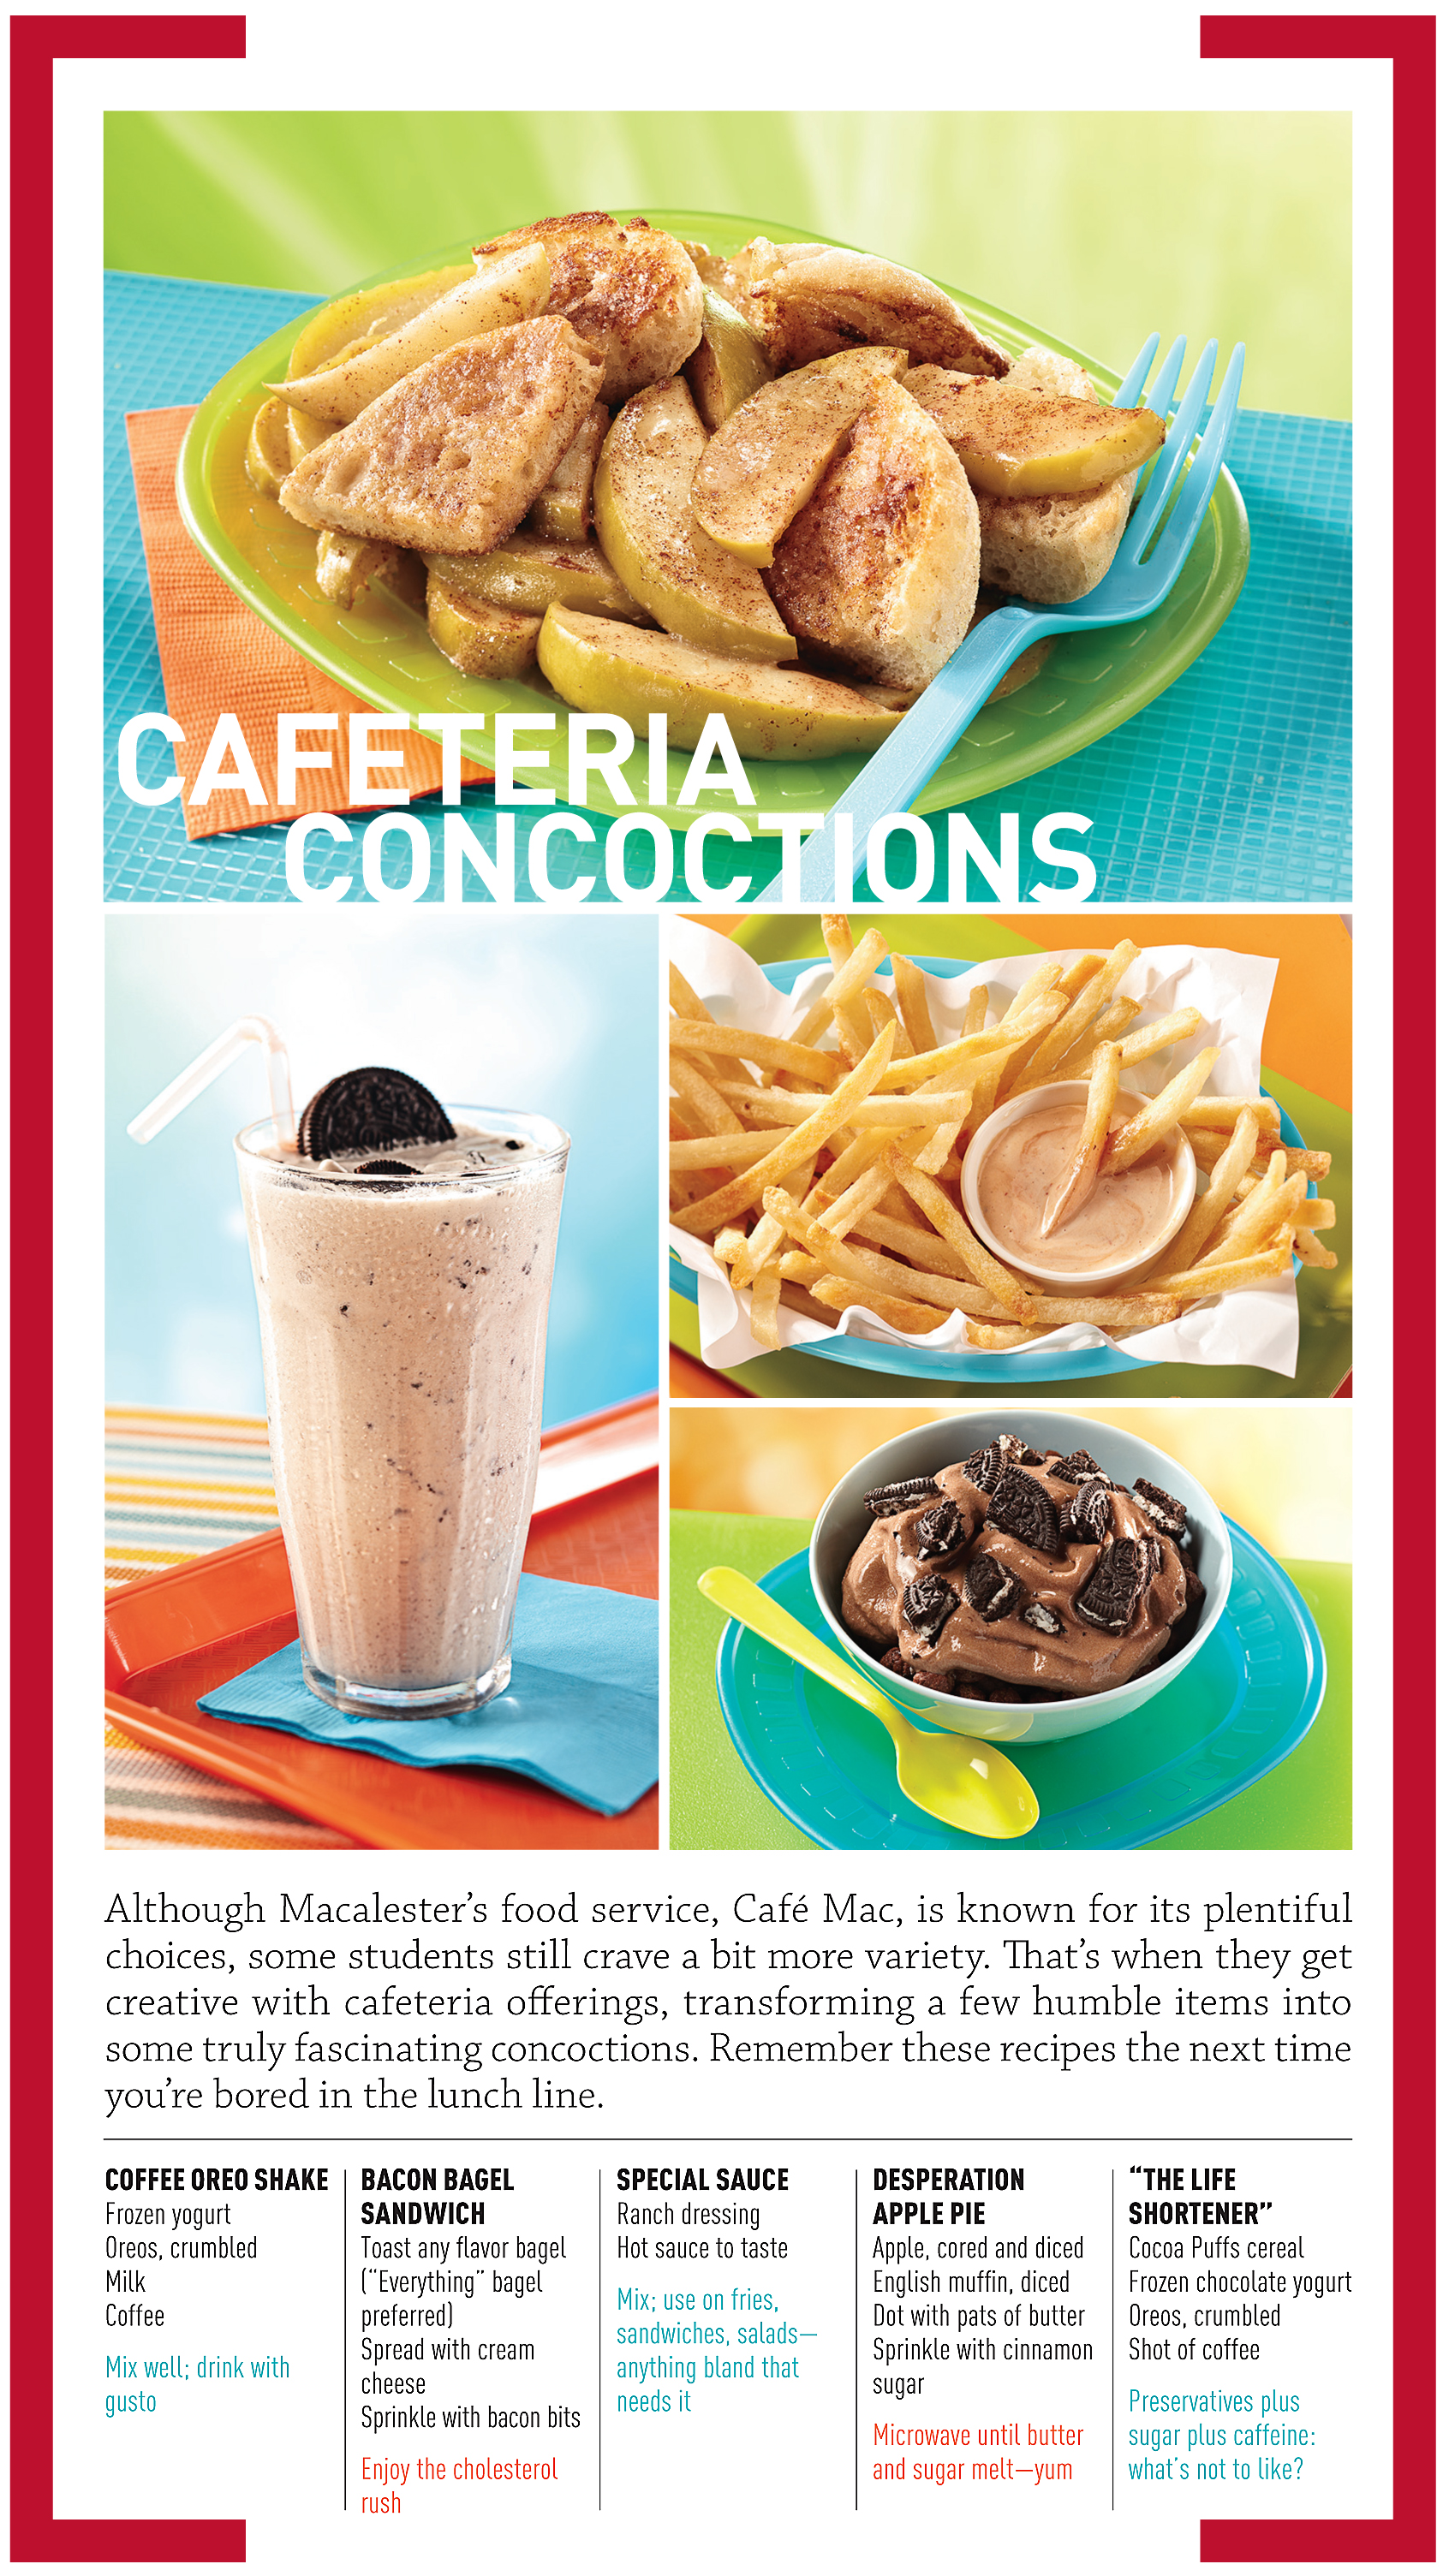 The Story Is Recipes From Students Who Come Up With Creative Food Ideas Cafeteria Offerings